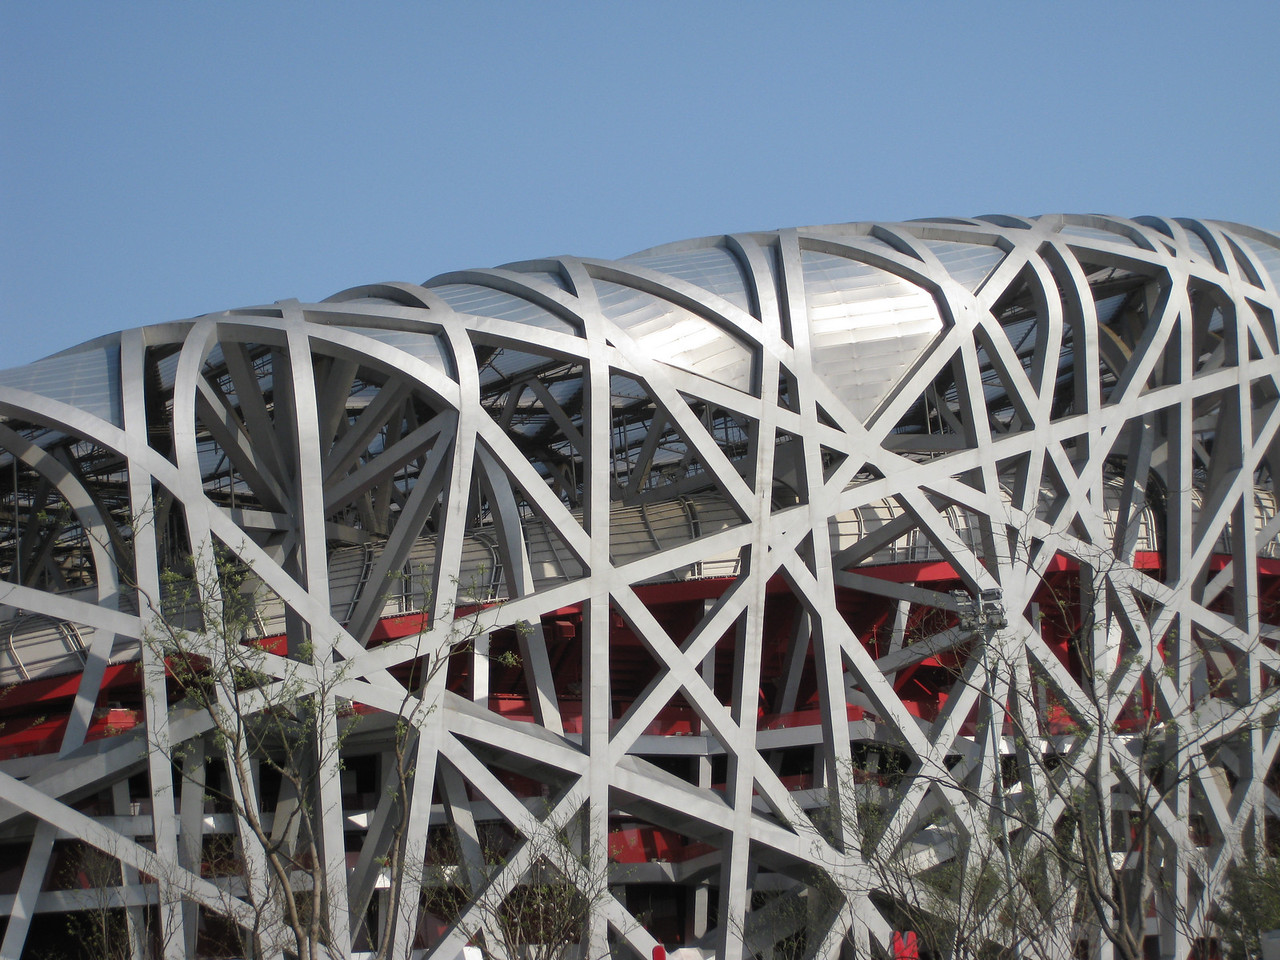 Birds nest up close. It was very cool.